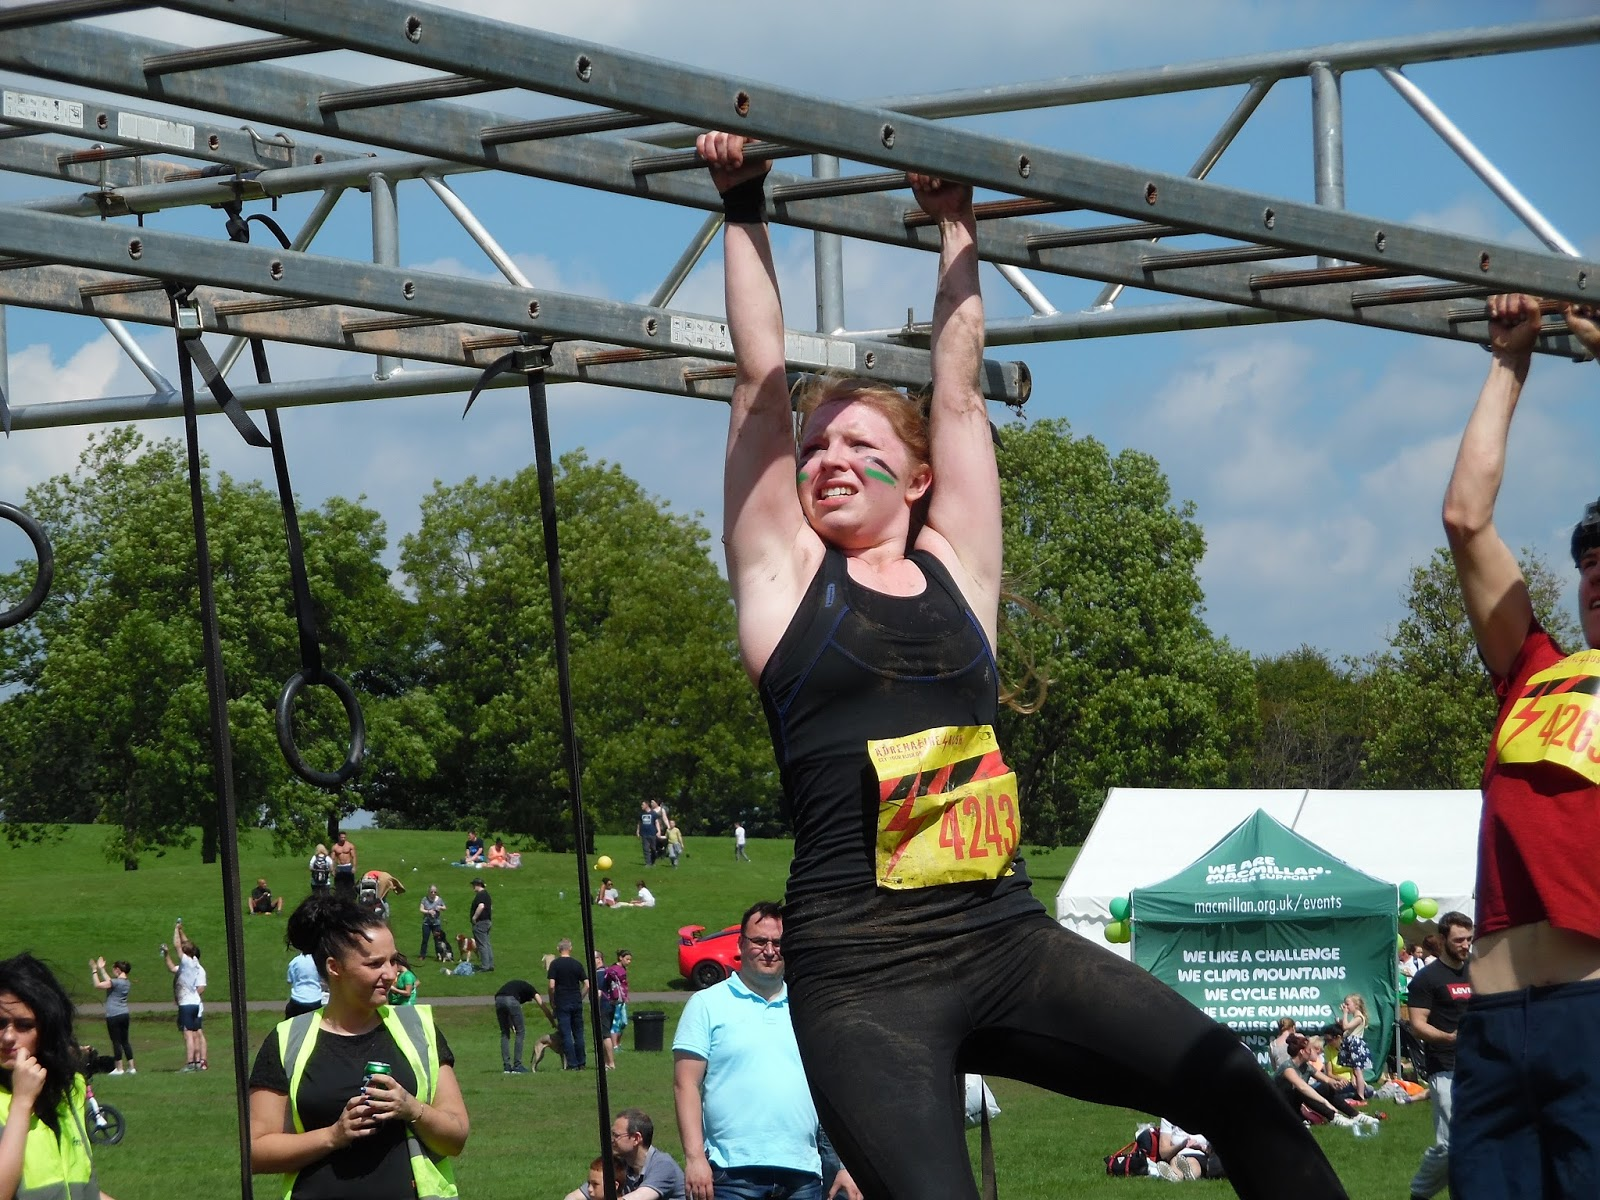 obstacle race, sport, olympics, gymnast, fitness, manchester, north west, heaton park, adrenaline rush